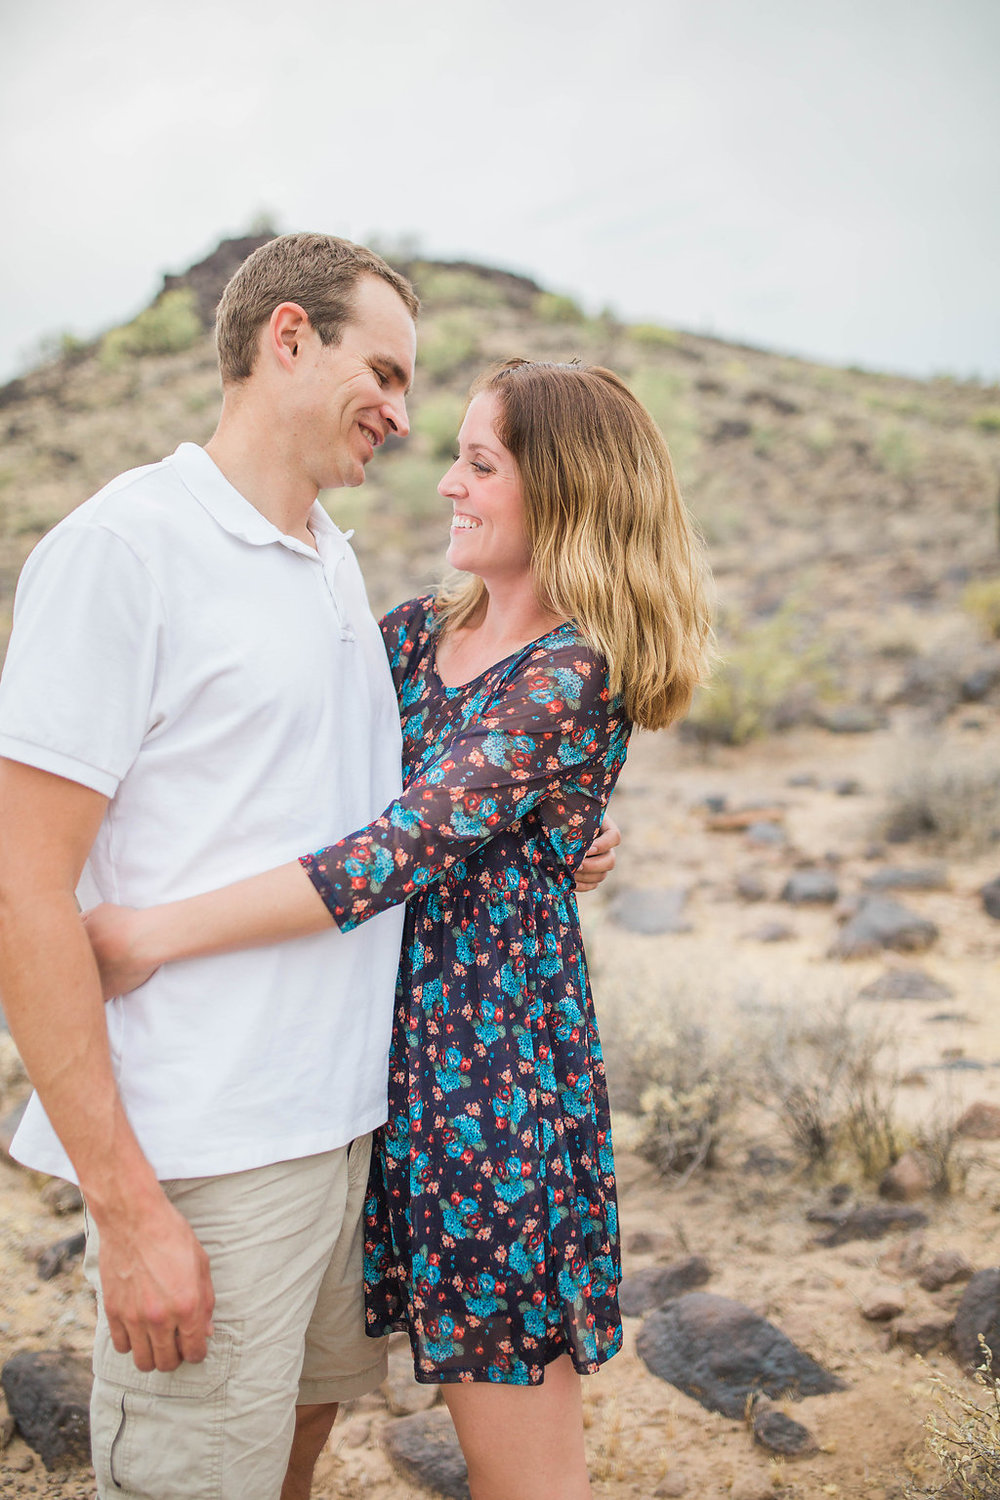 Desert Family Photo Shoot in Arizona | Emma Rose Company | Portrait Photographer | Seattle Wedding Photographer | Adorable Family Photo Shoot Outside | Family Posing | Cute Kids with Dad | Family Photo Shoot | Husband and Wife Pictures | What to Wear for pictures